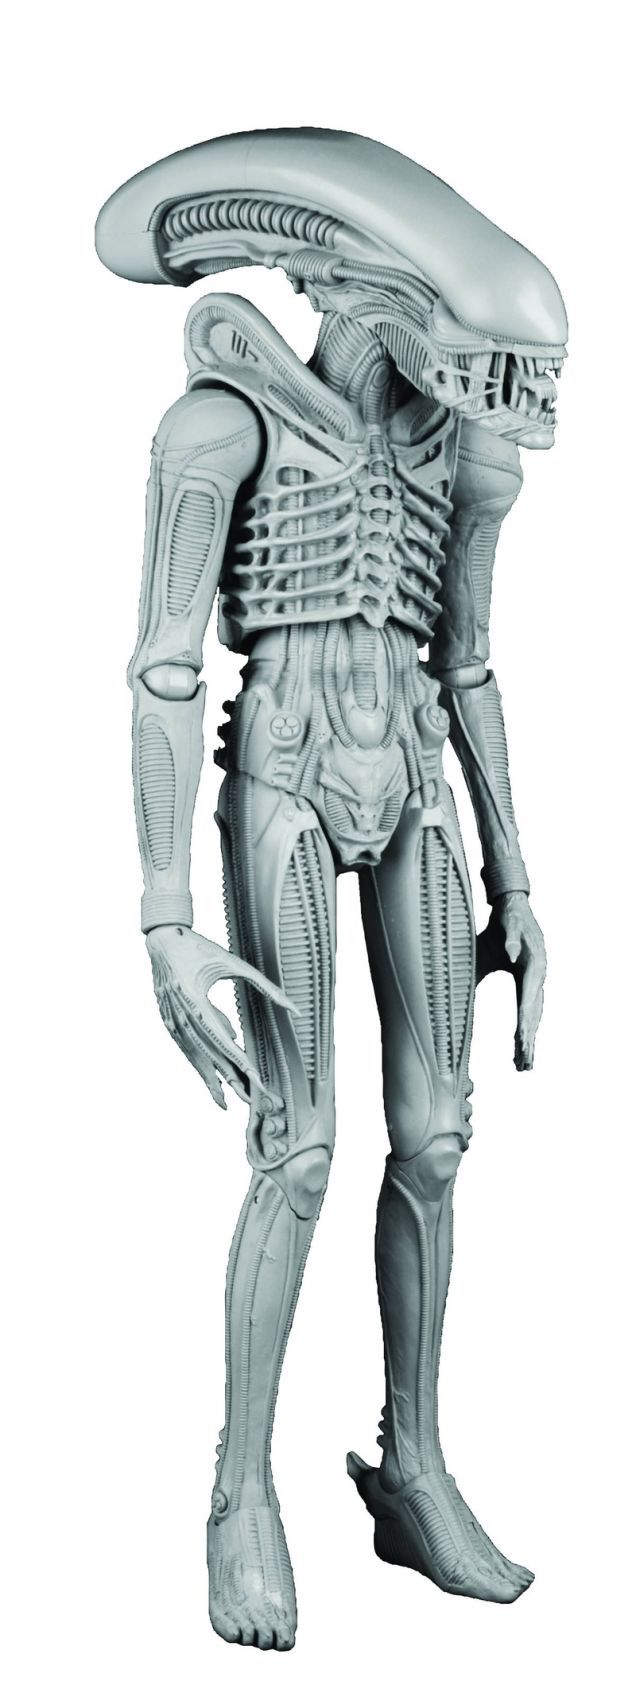 "NECA Is Turning The ""Big Chap"" Alien Into An Amazing, Gigantic Figure"